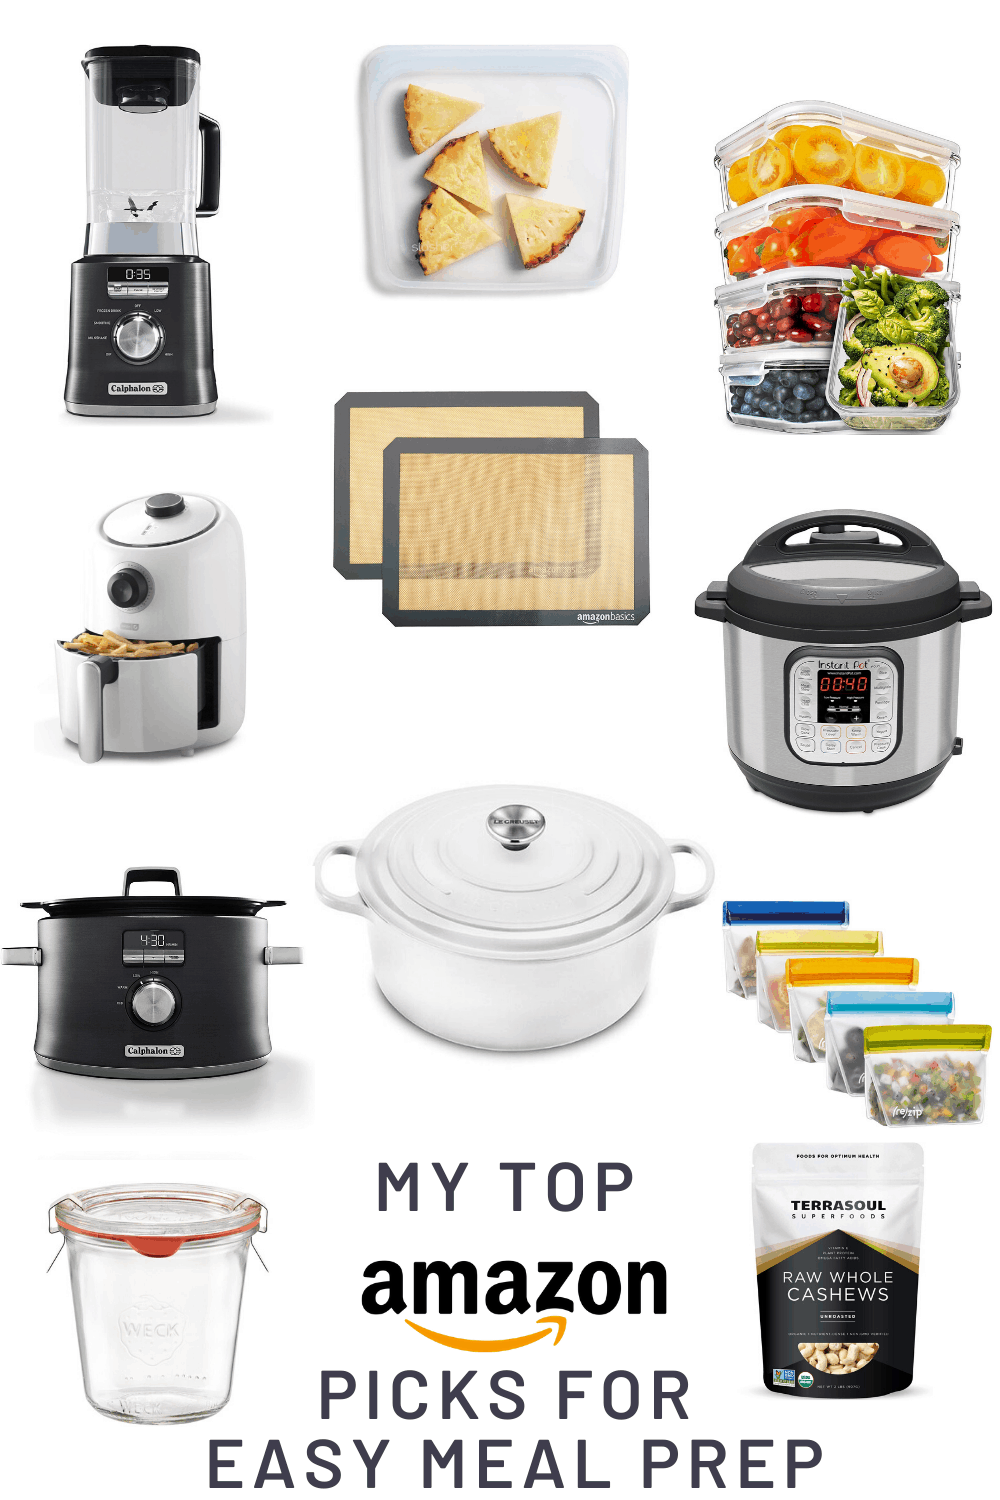 My Top 25 Amazon Purchases for Easy Meal Prep